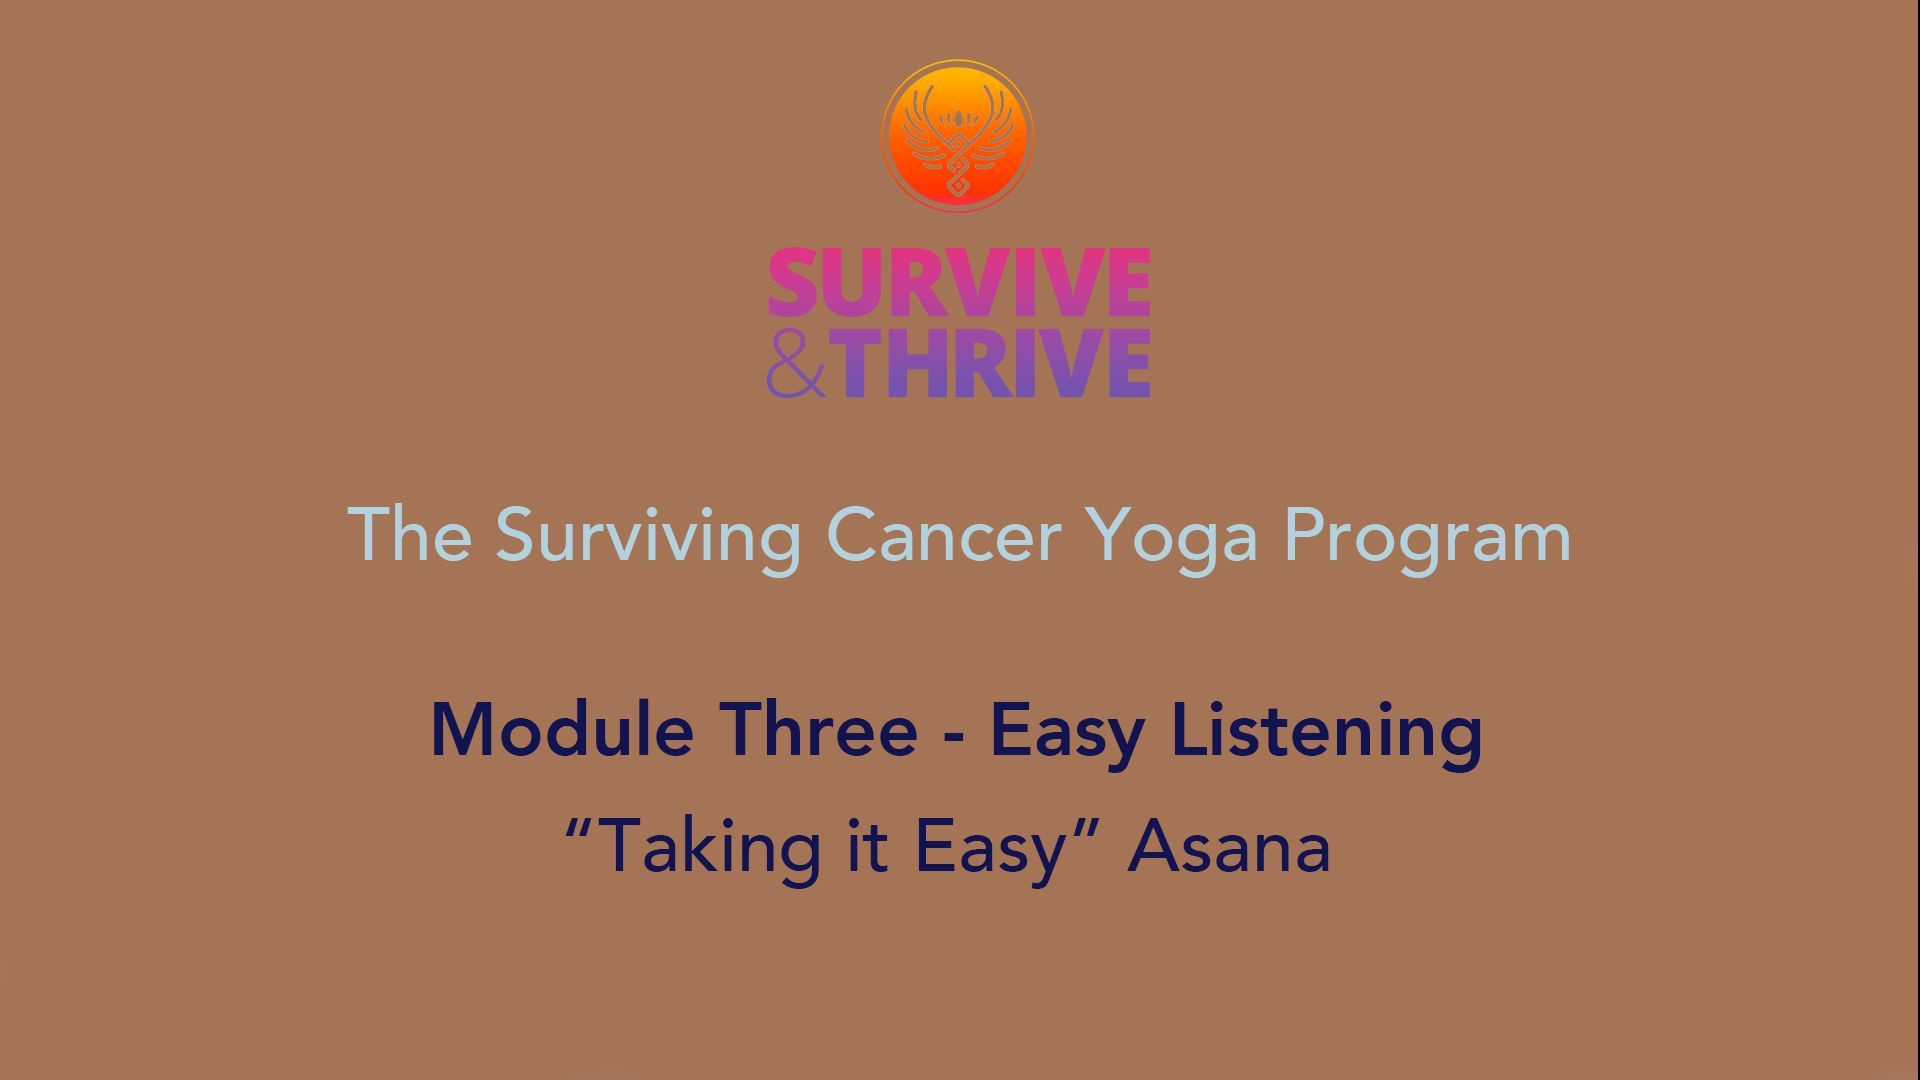 SURVIVE AND THRIVE | MODULE 3 - EASY LISTENING | TAKING IT EASY ASANA